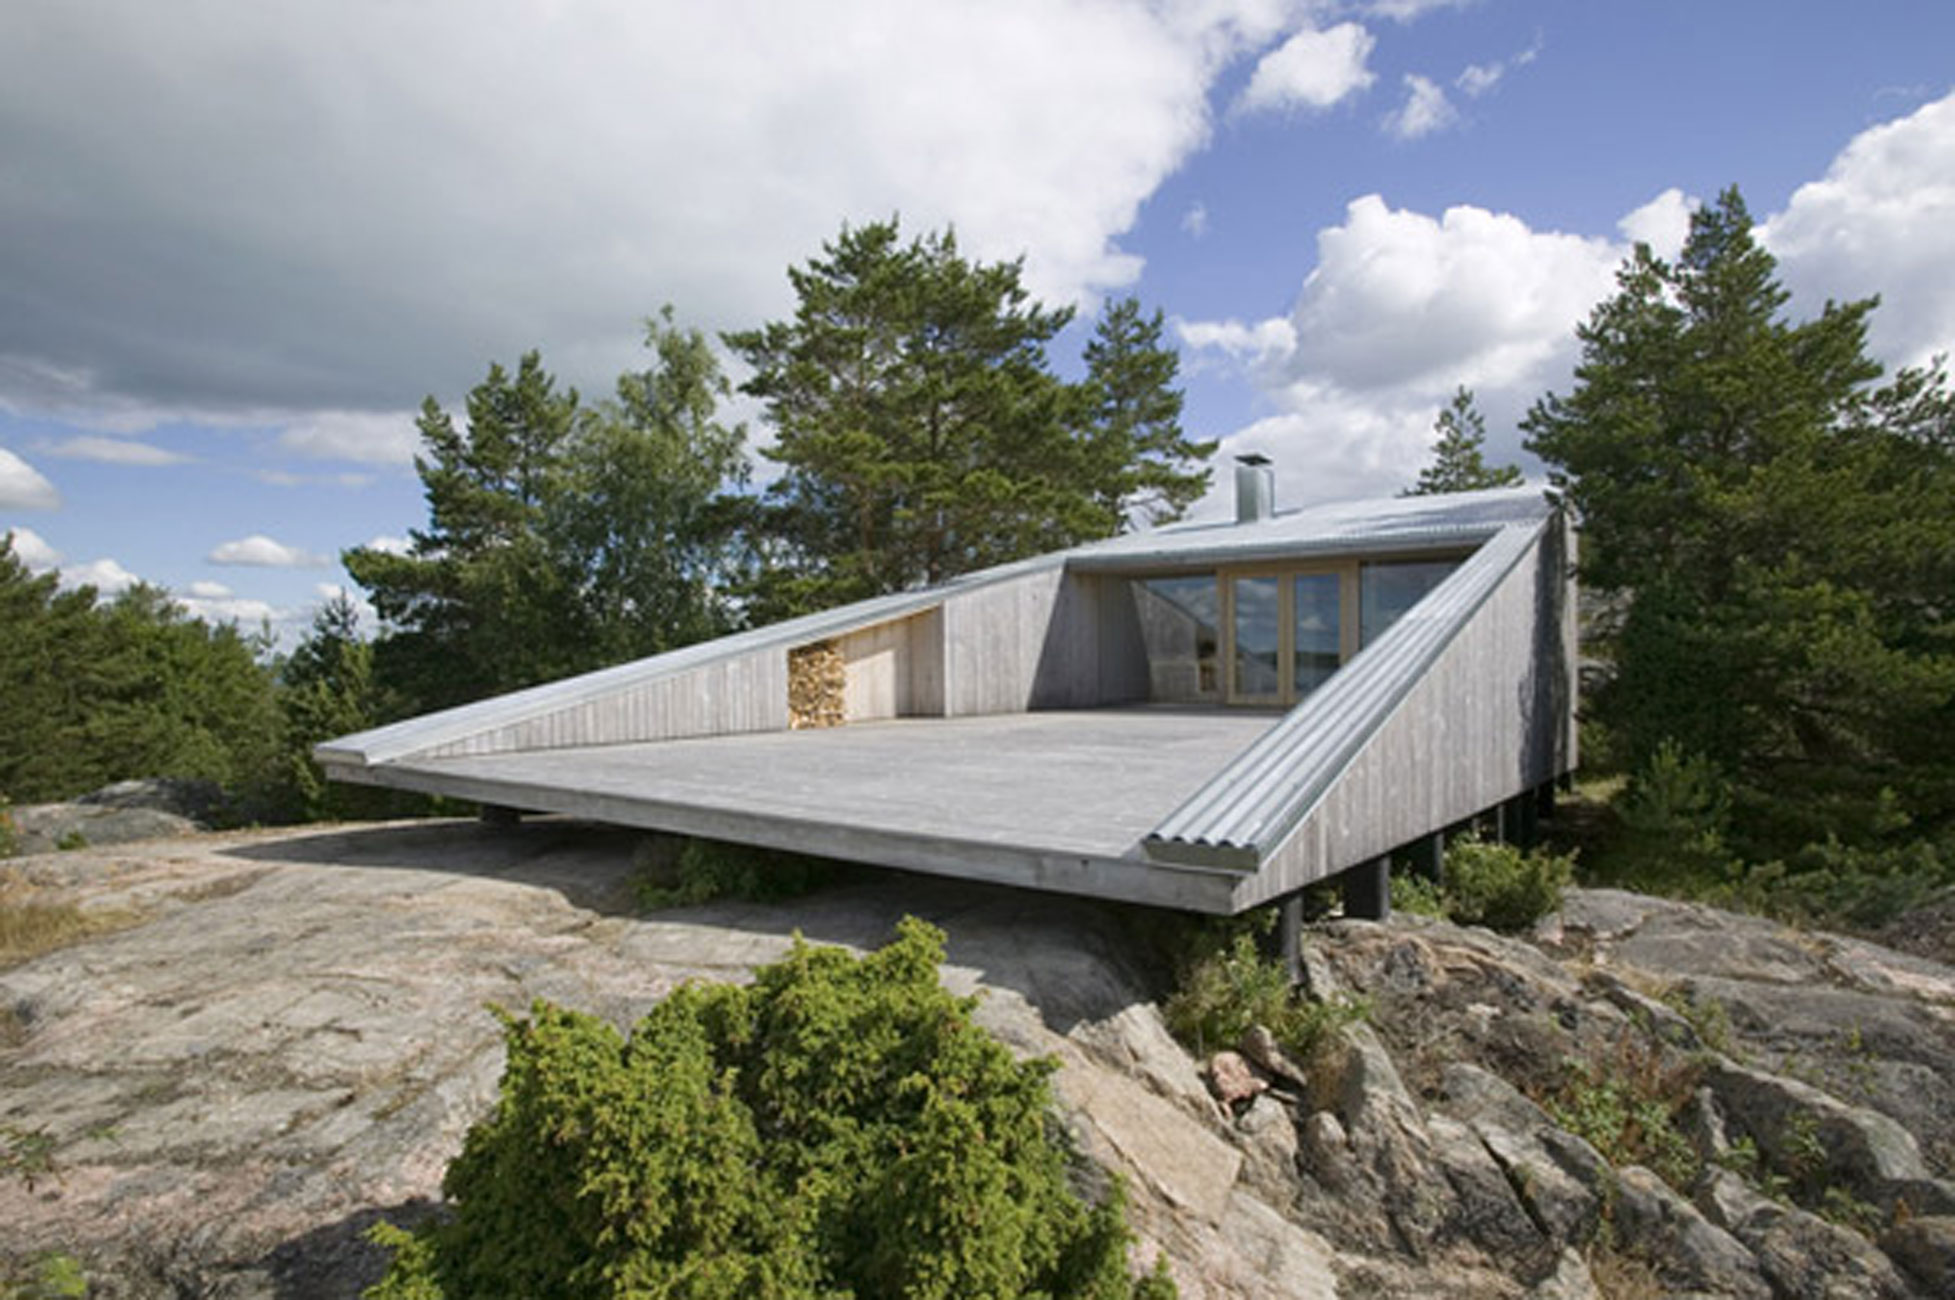 Lake House Design With Unusual Architecture In Finland Landscape